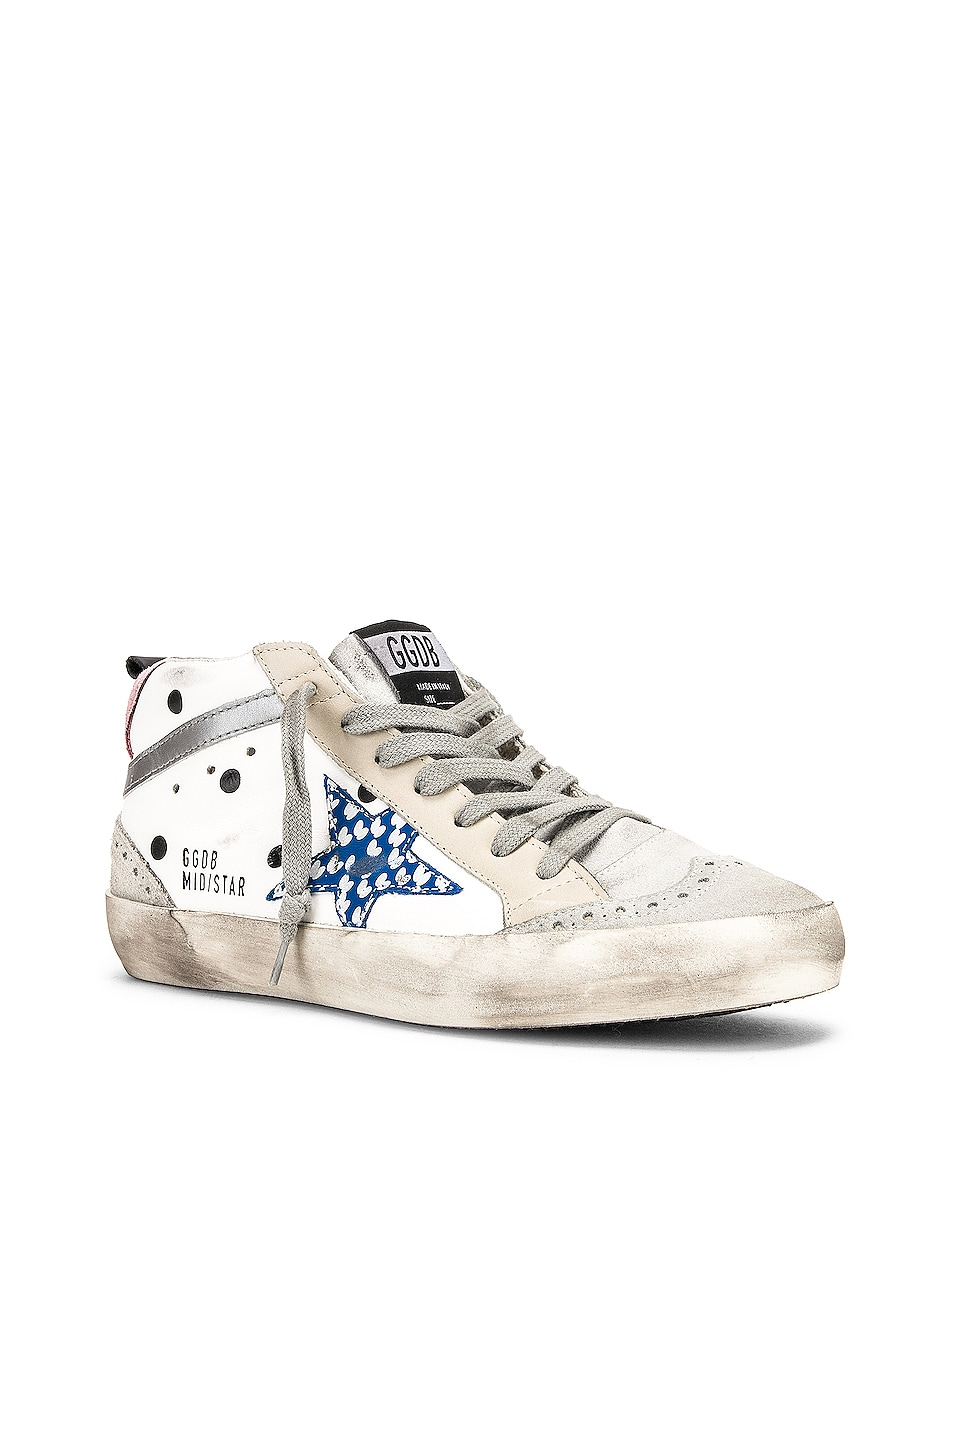 Image 2 of Golden Goose Mid Star Sneakers in White Dot